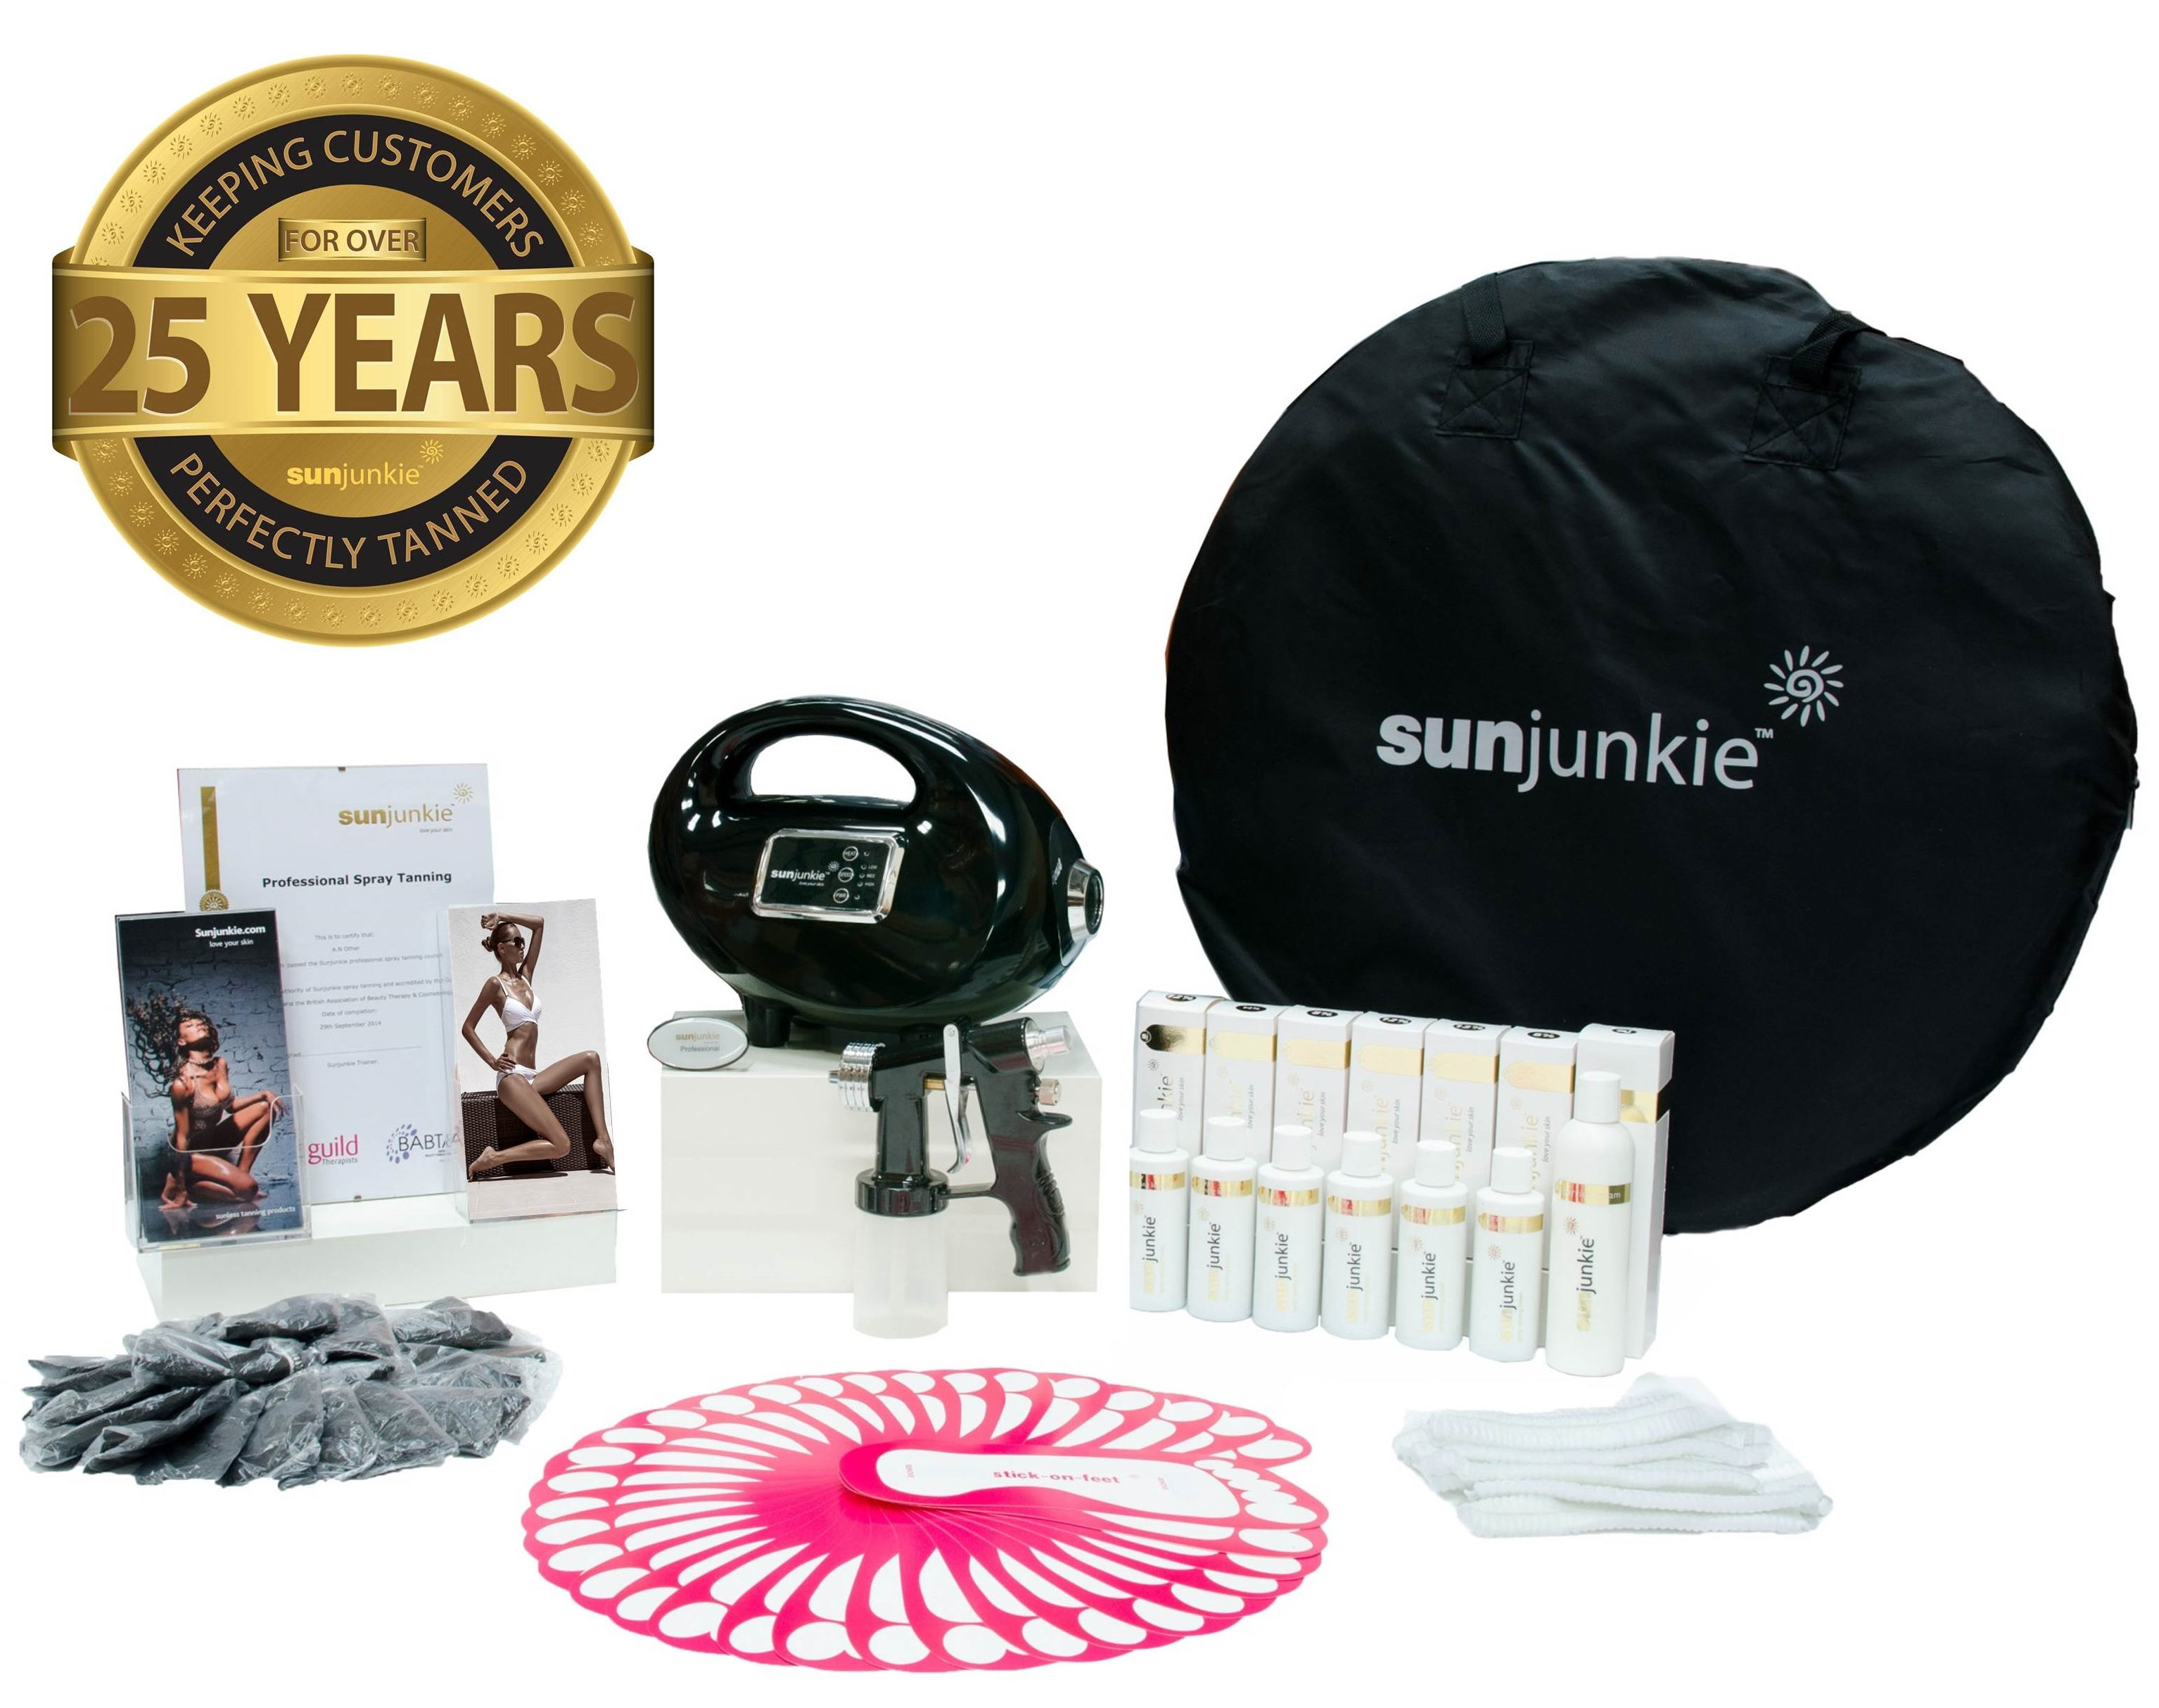 Sunjunkie spray tan machines | spray tan kits | package | professional